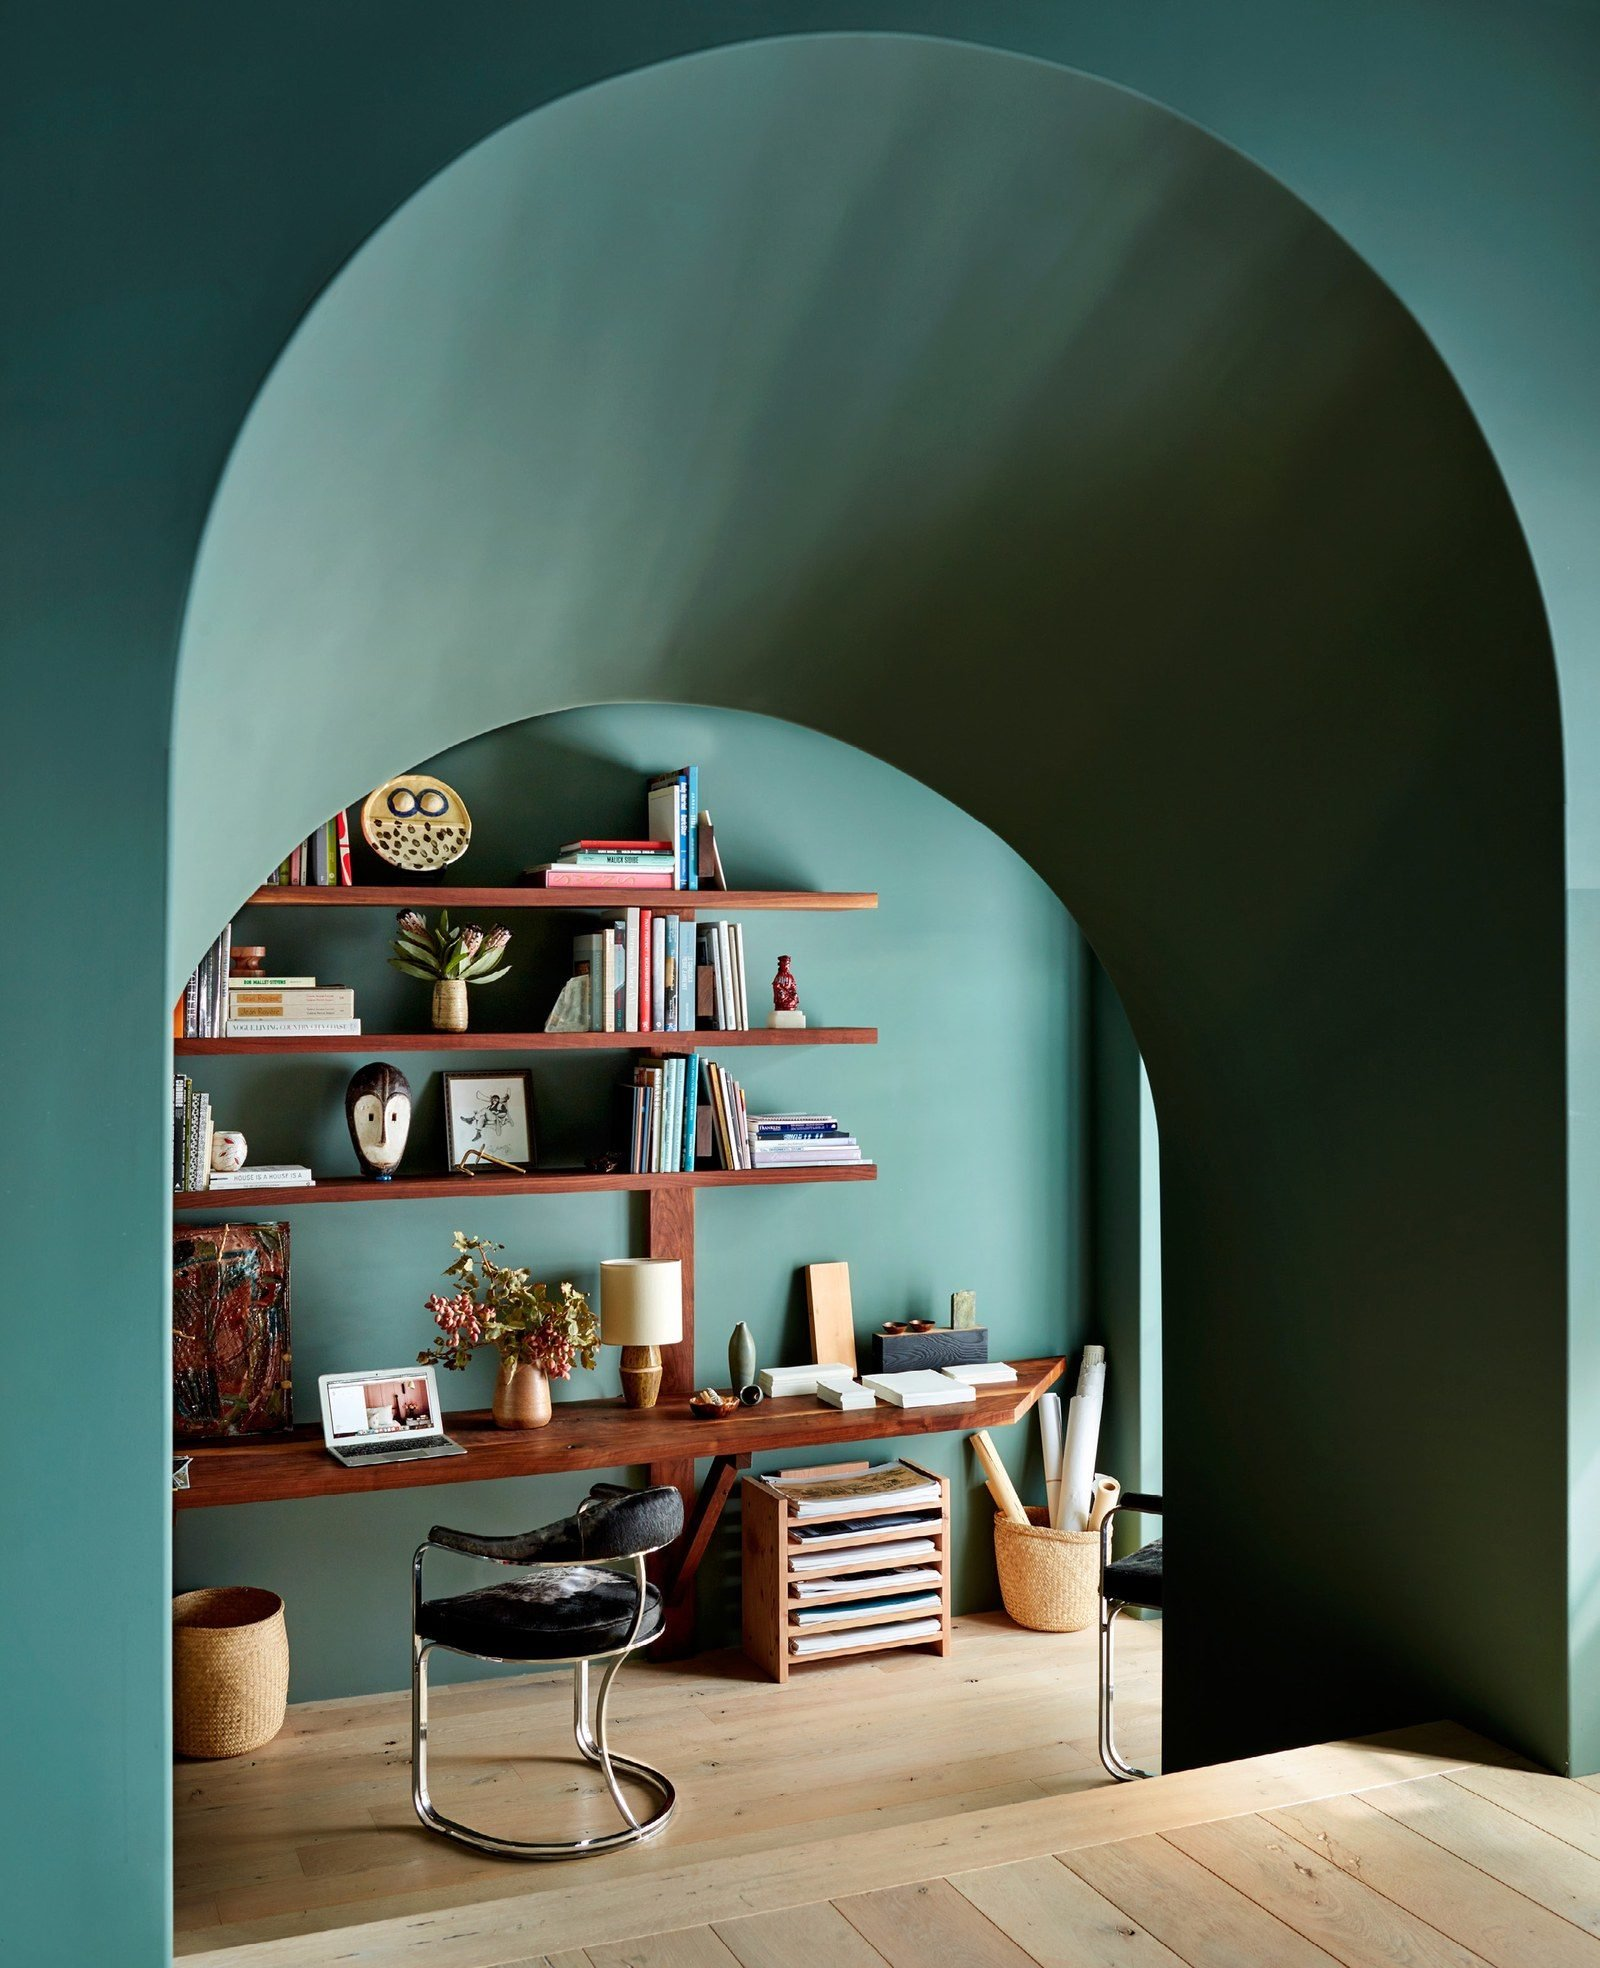 Color Curation: Sacramento Green (The Shade You'll Be Seeing Everywhere) - Bobby Berk